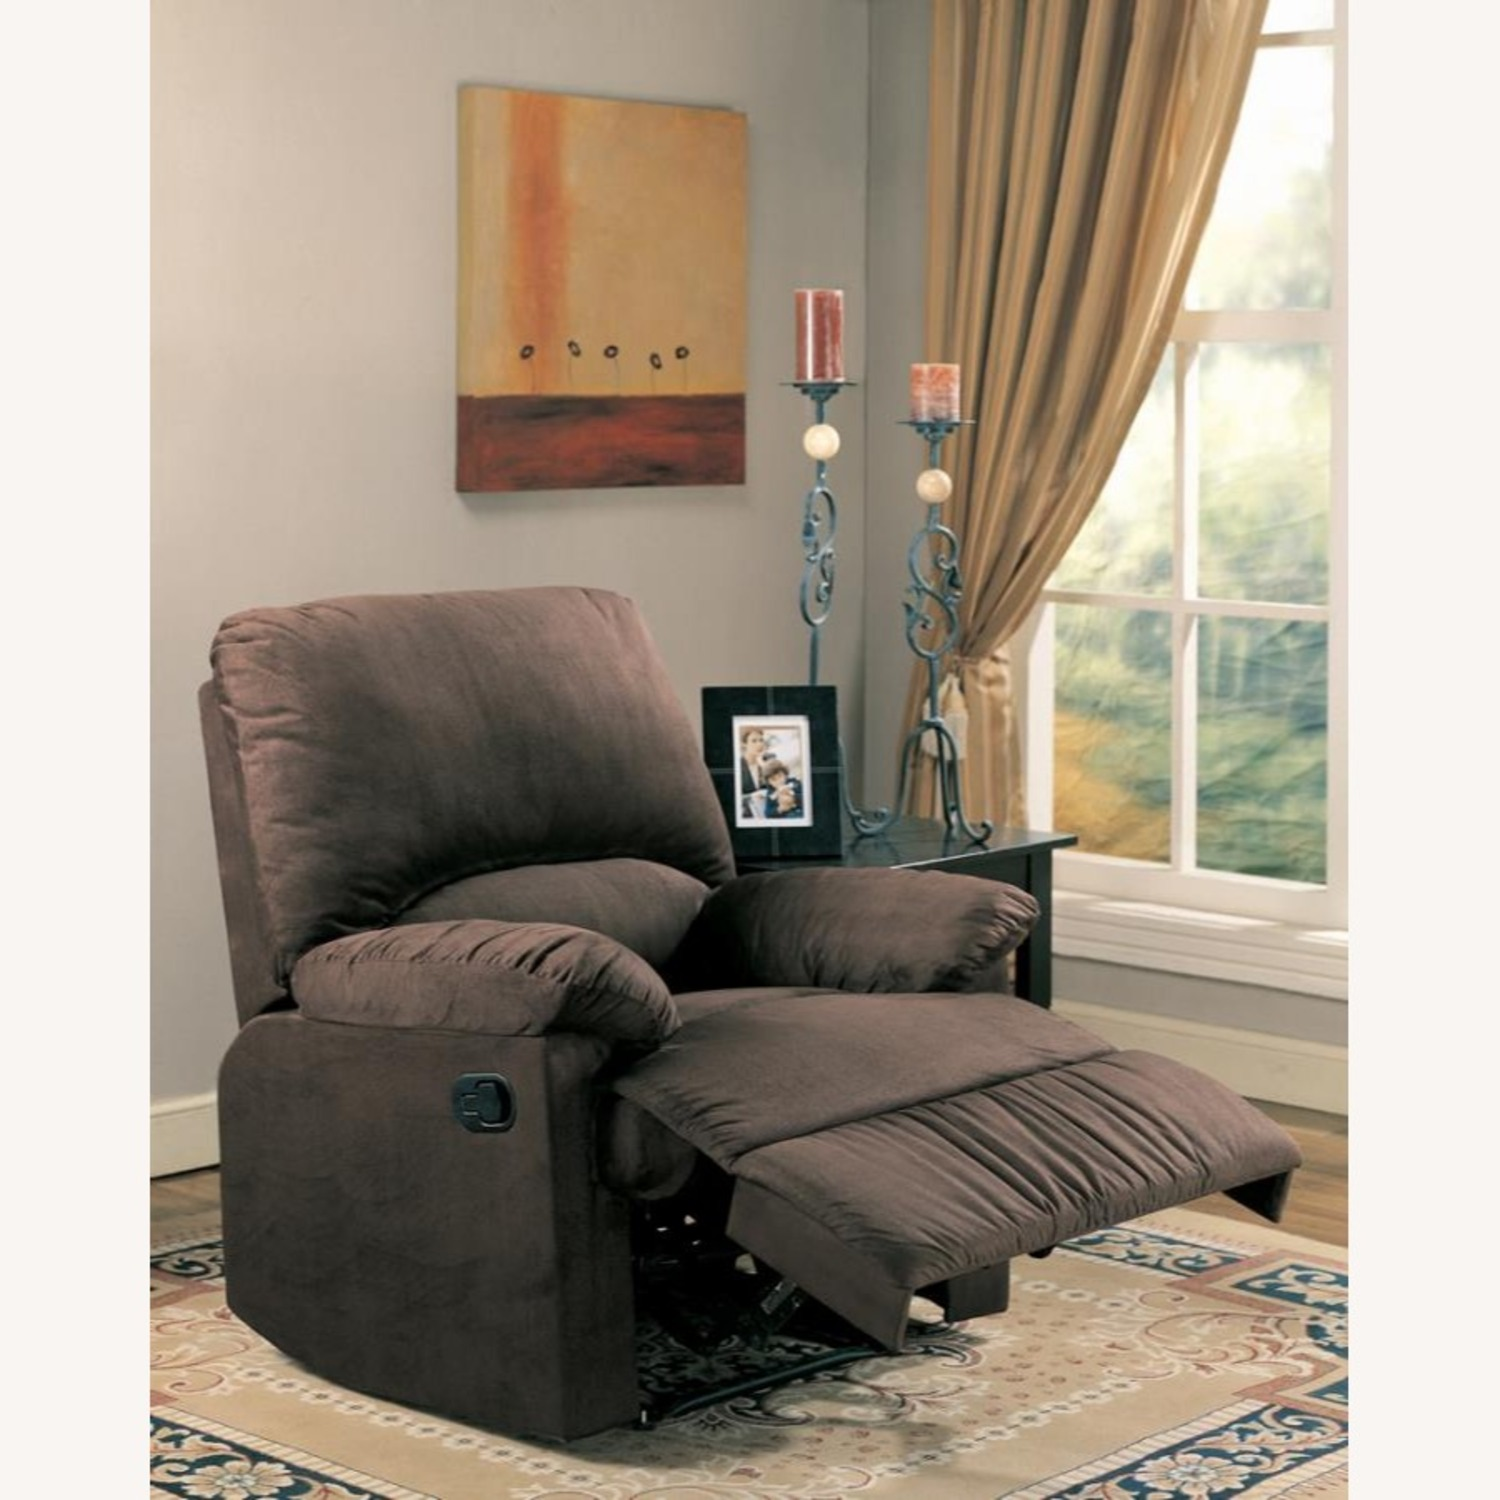 Casual Recliner In Chocolate Microfiber Upholstery - image-2